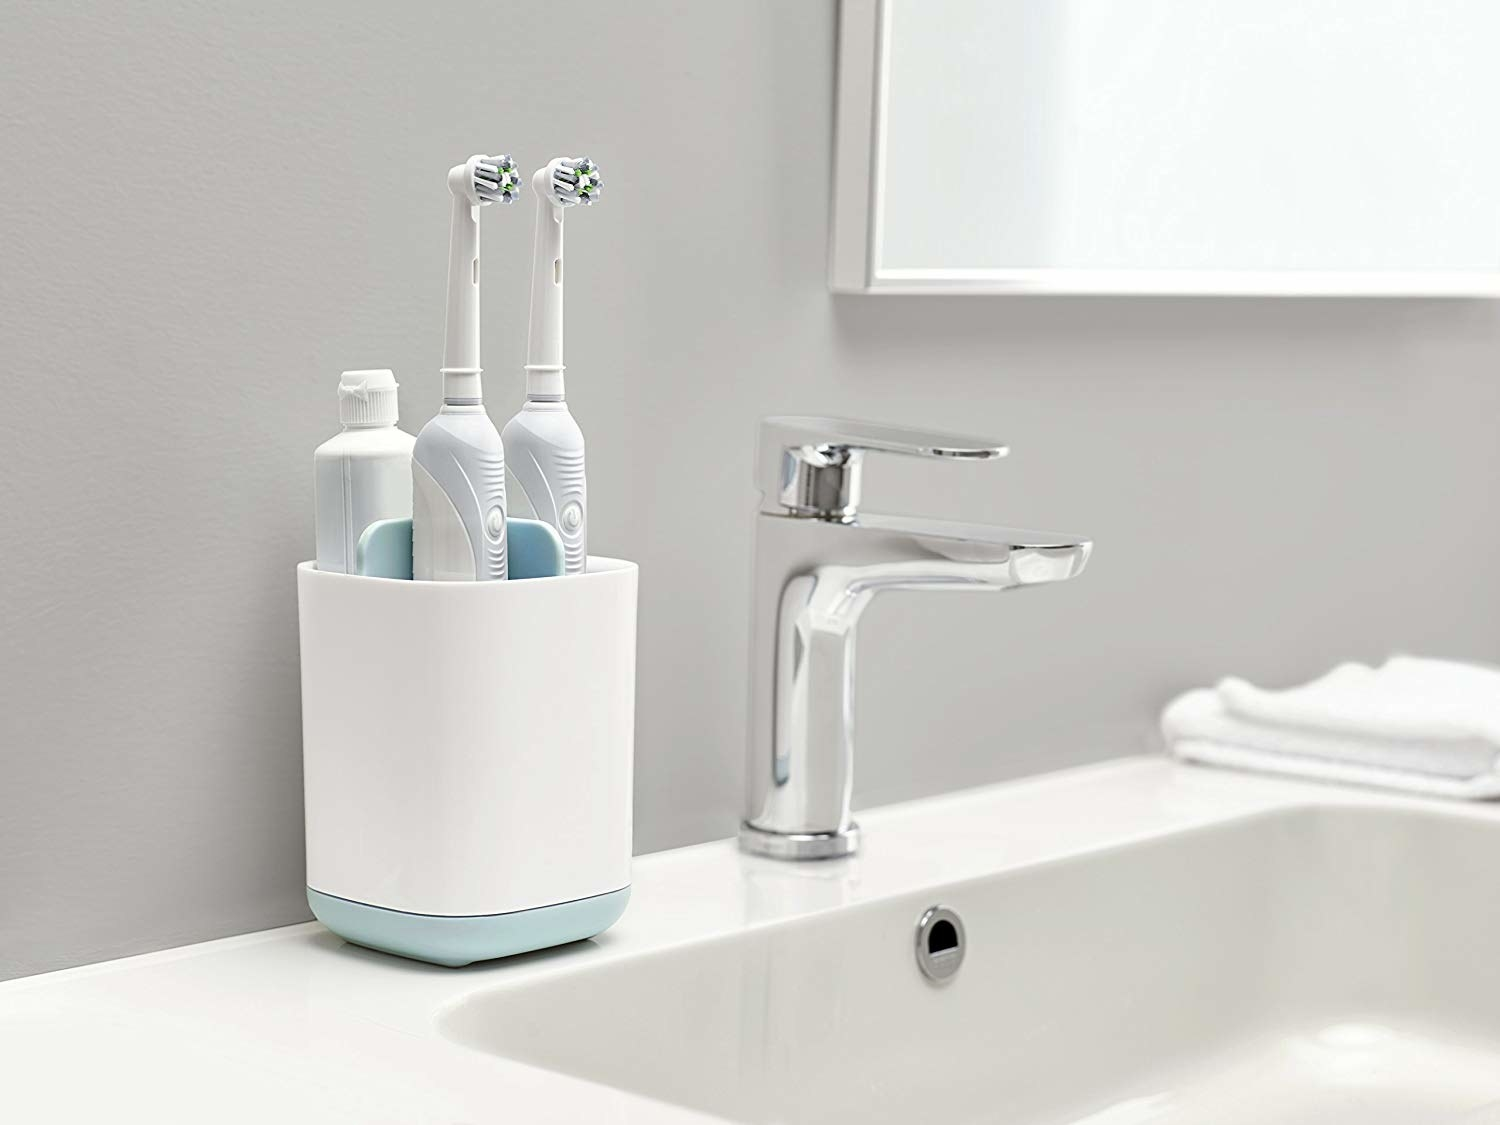 A square-shaped toothbrush holder with four slots sitting on a bathroom counter Two slots have electric toothbrushes in them and one has a tube of toothpaste